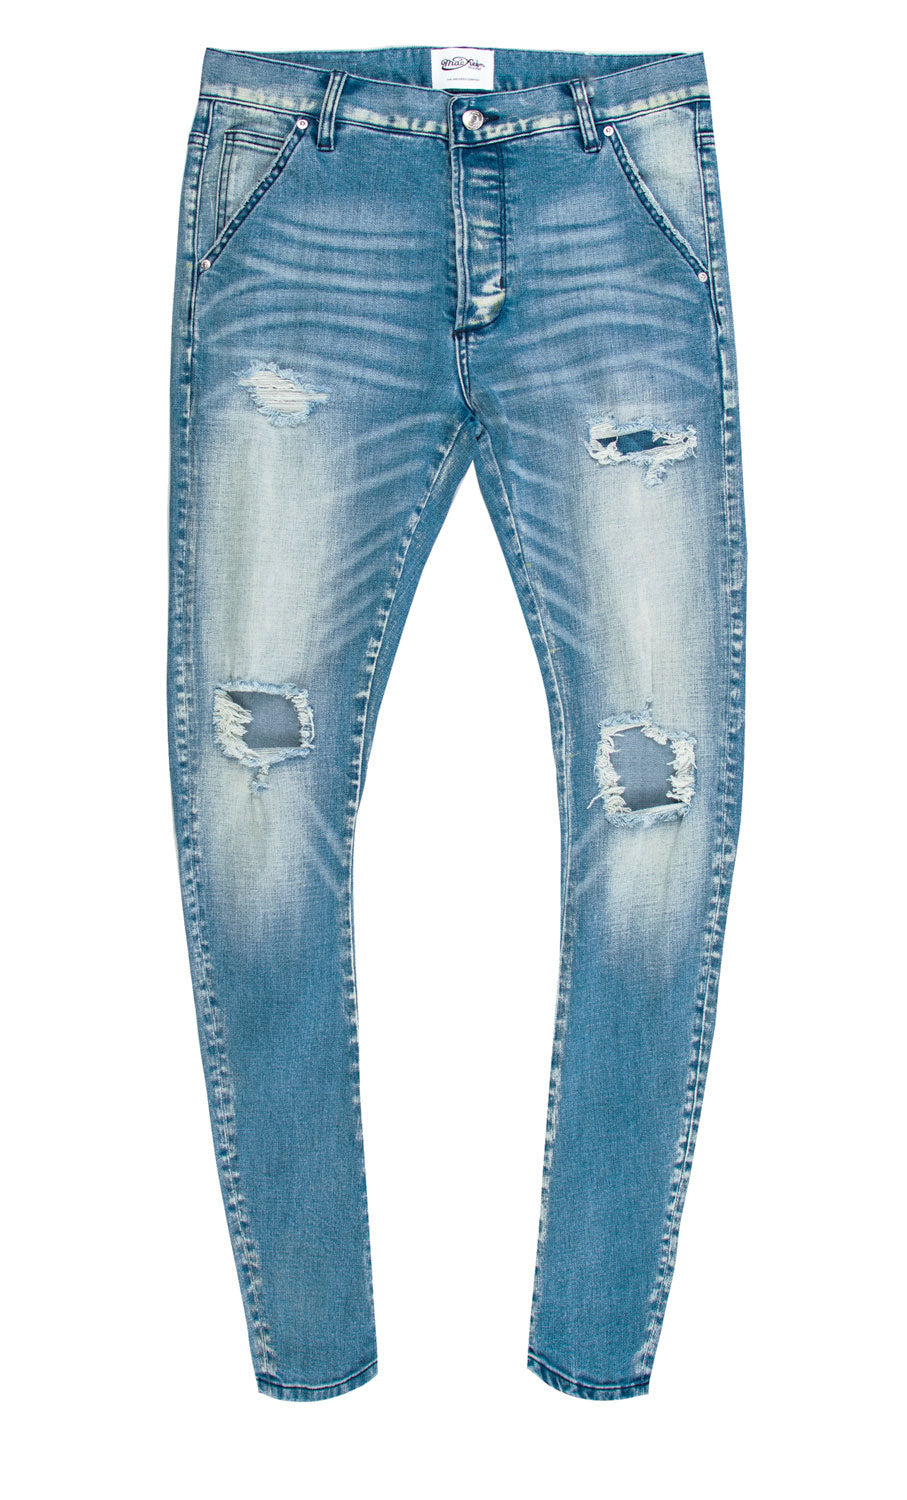 DILAN DISTRESSED DENIM